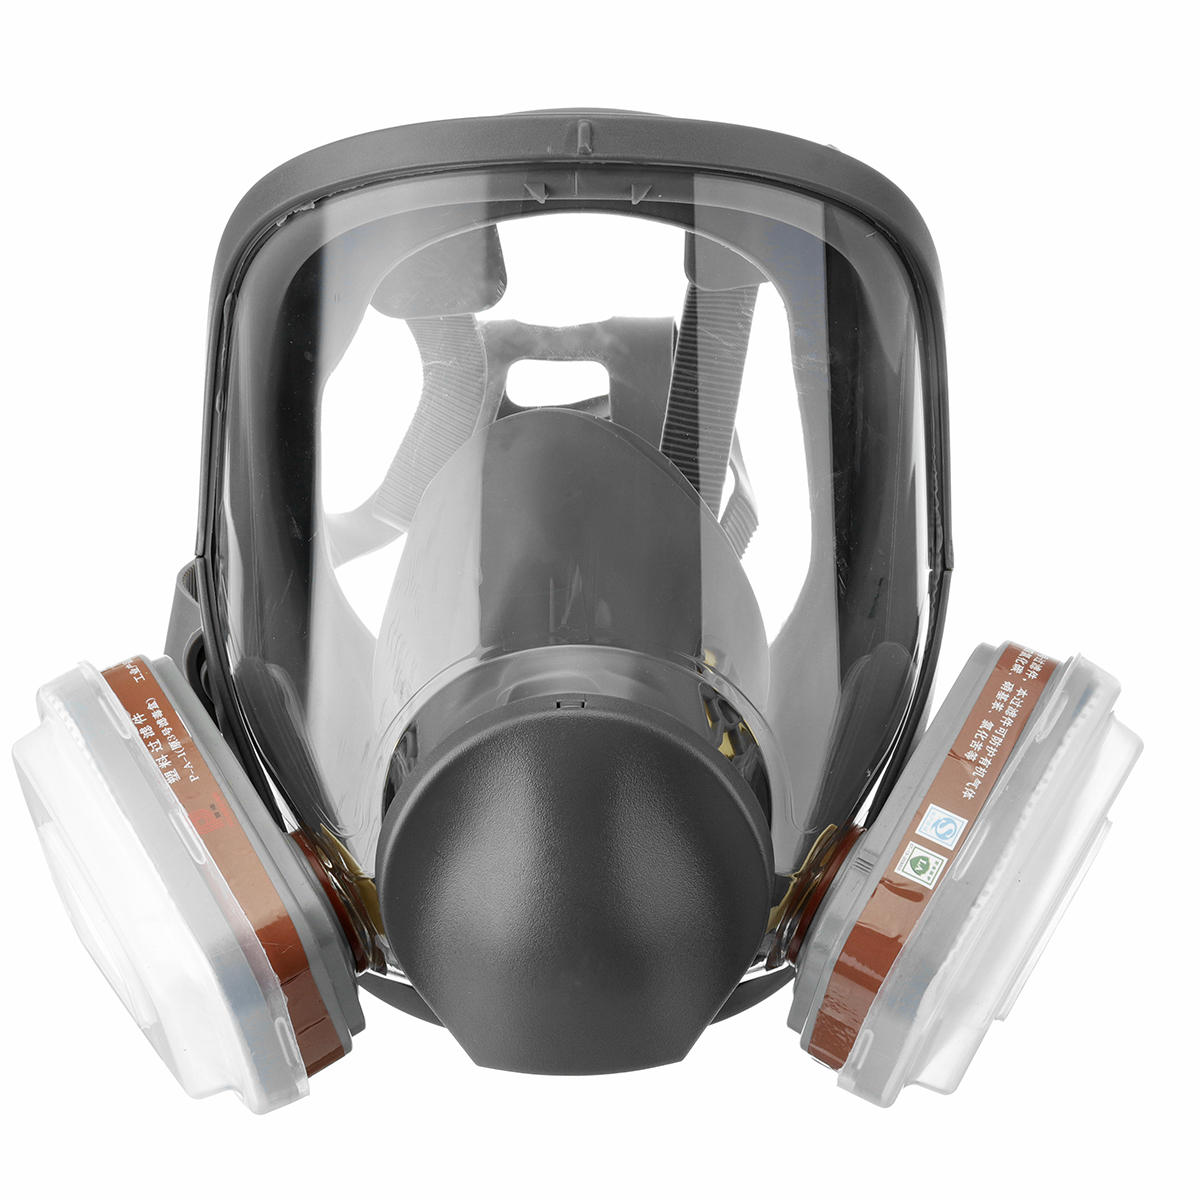 7 in 1 Automatic Full Face Gas Mask Anti-fog 6800